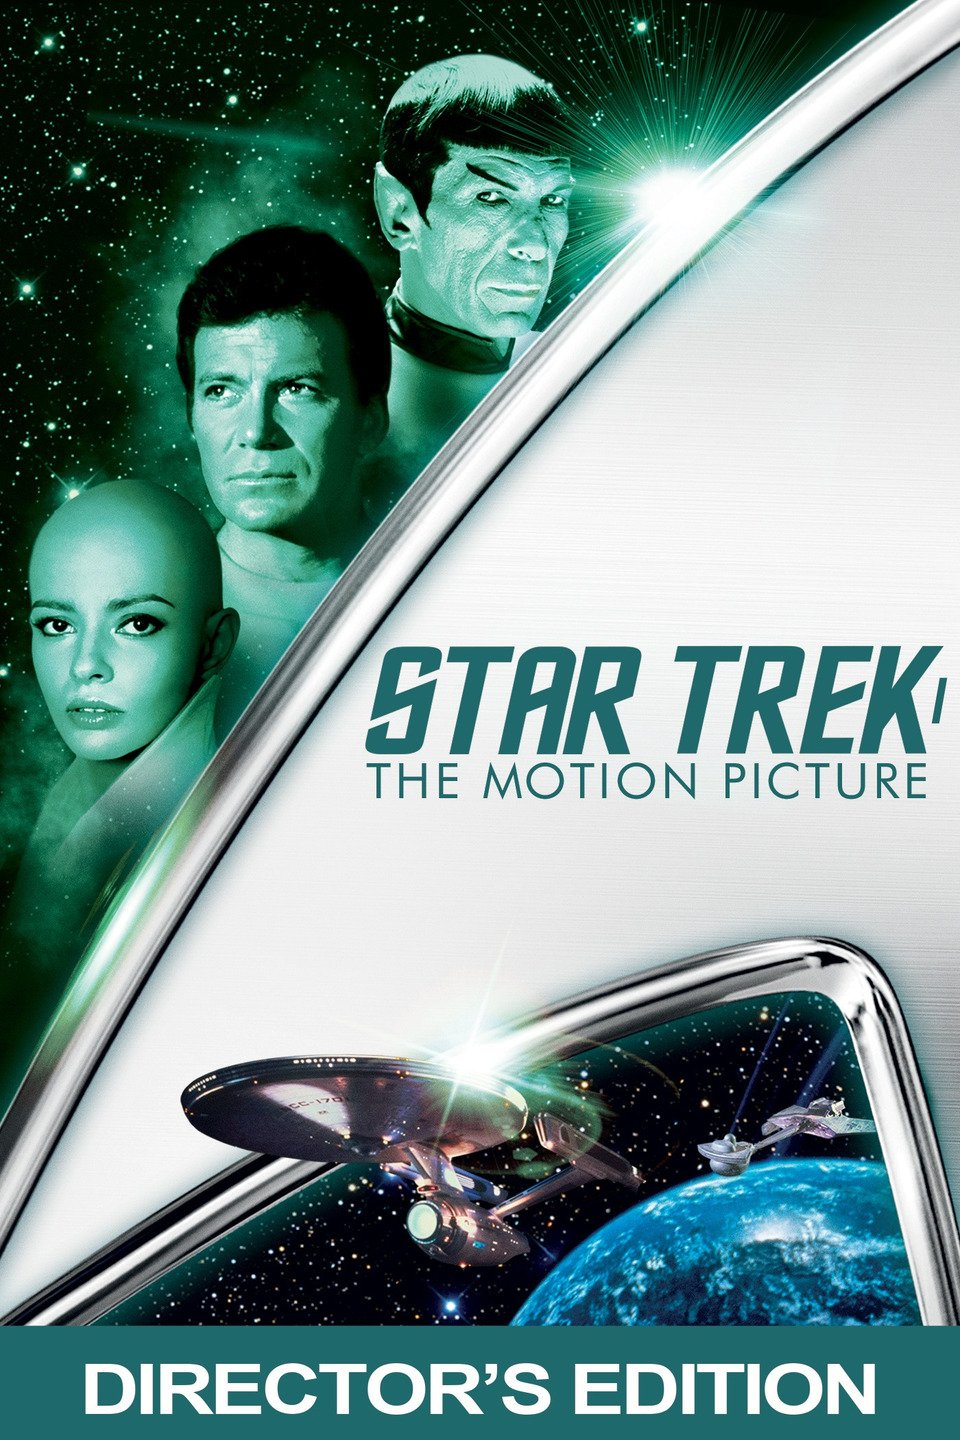 Star Trek: The Motion Picture-Star Trek: The Motion Picture